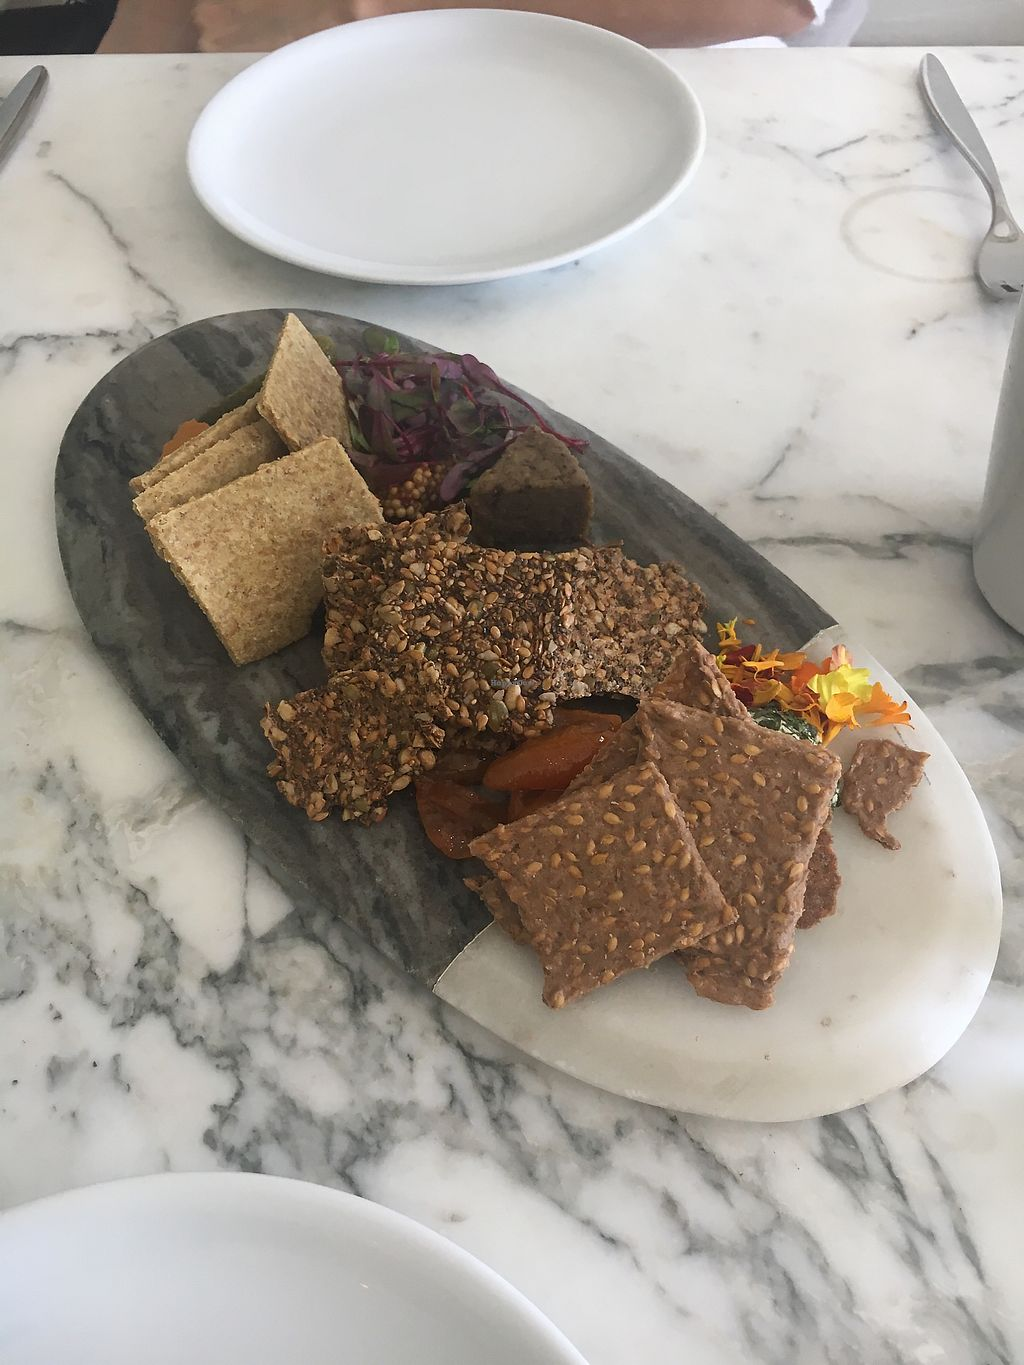 """Photo of Plant Food and Wine  by <a href=""""/members/profile/carolinep"""">carolinep</a> <br/>""""Cheese"""" Board <br/> January 27, 2018  - <a href='/contact/abuse/image/59229/351294'>Report</a>"""